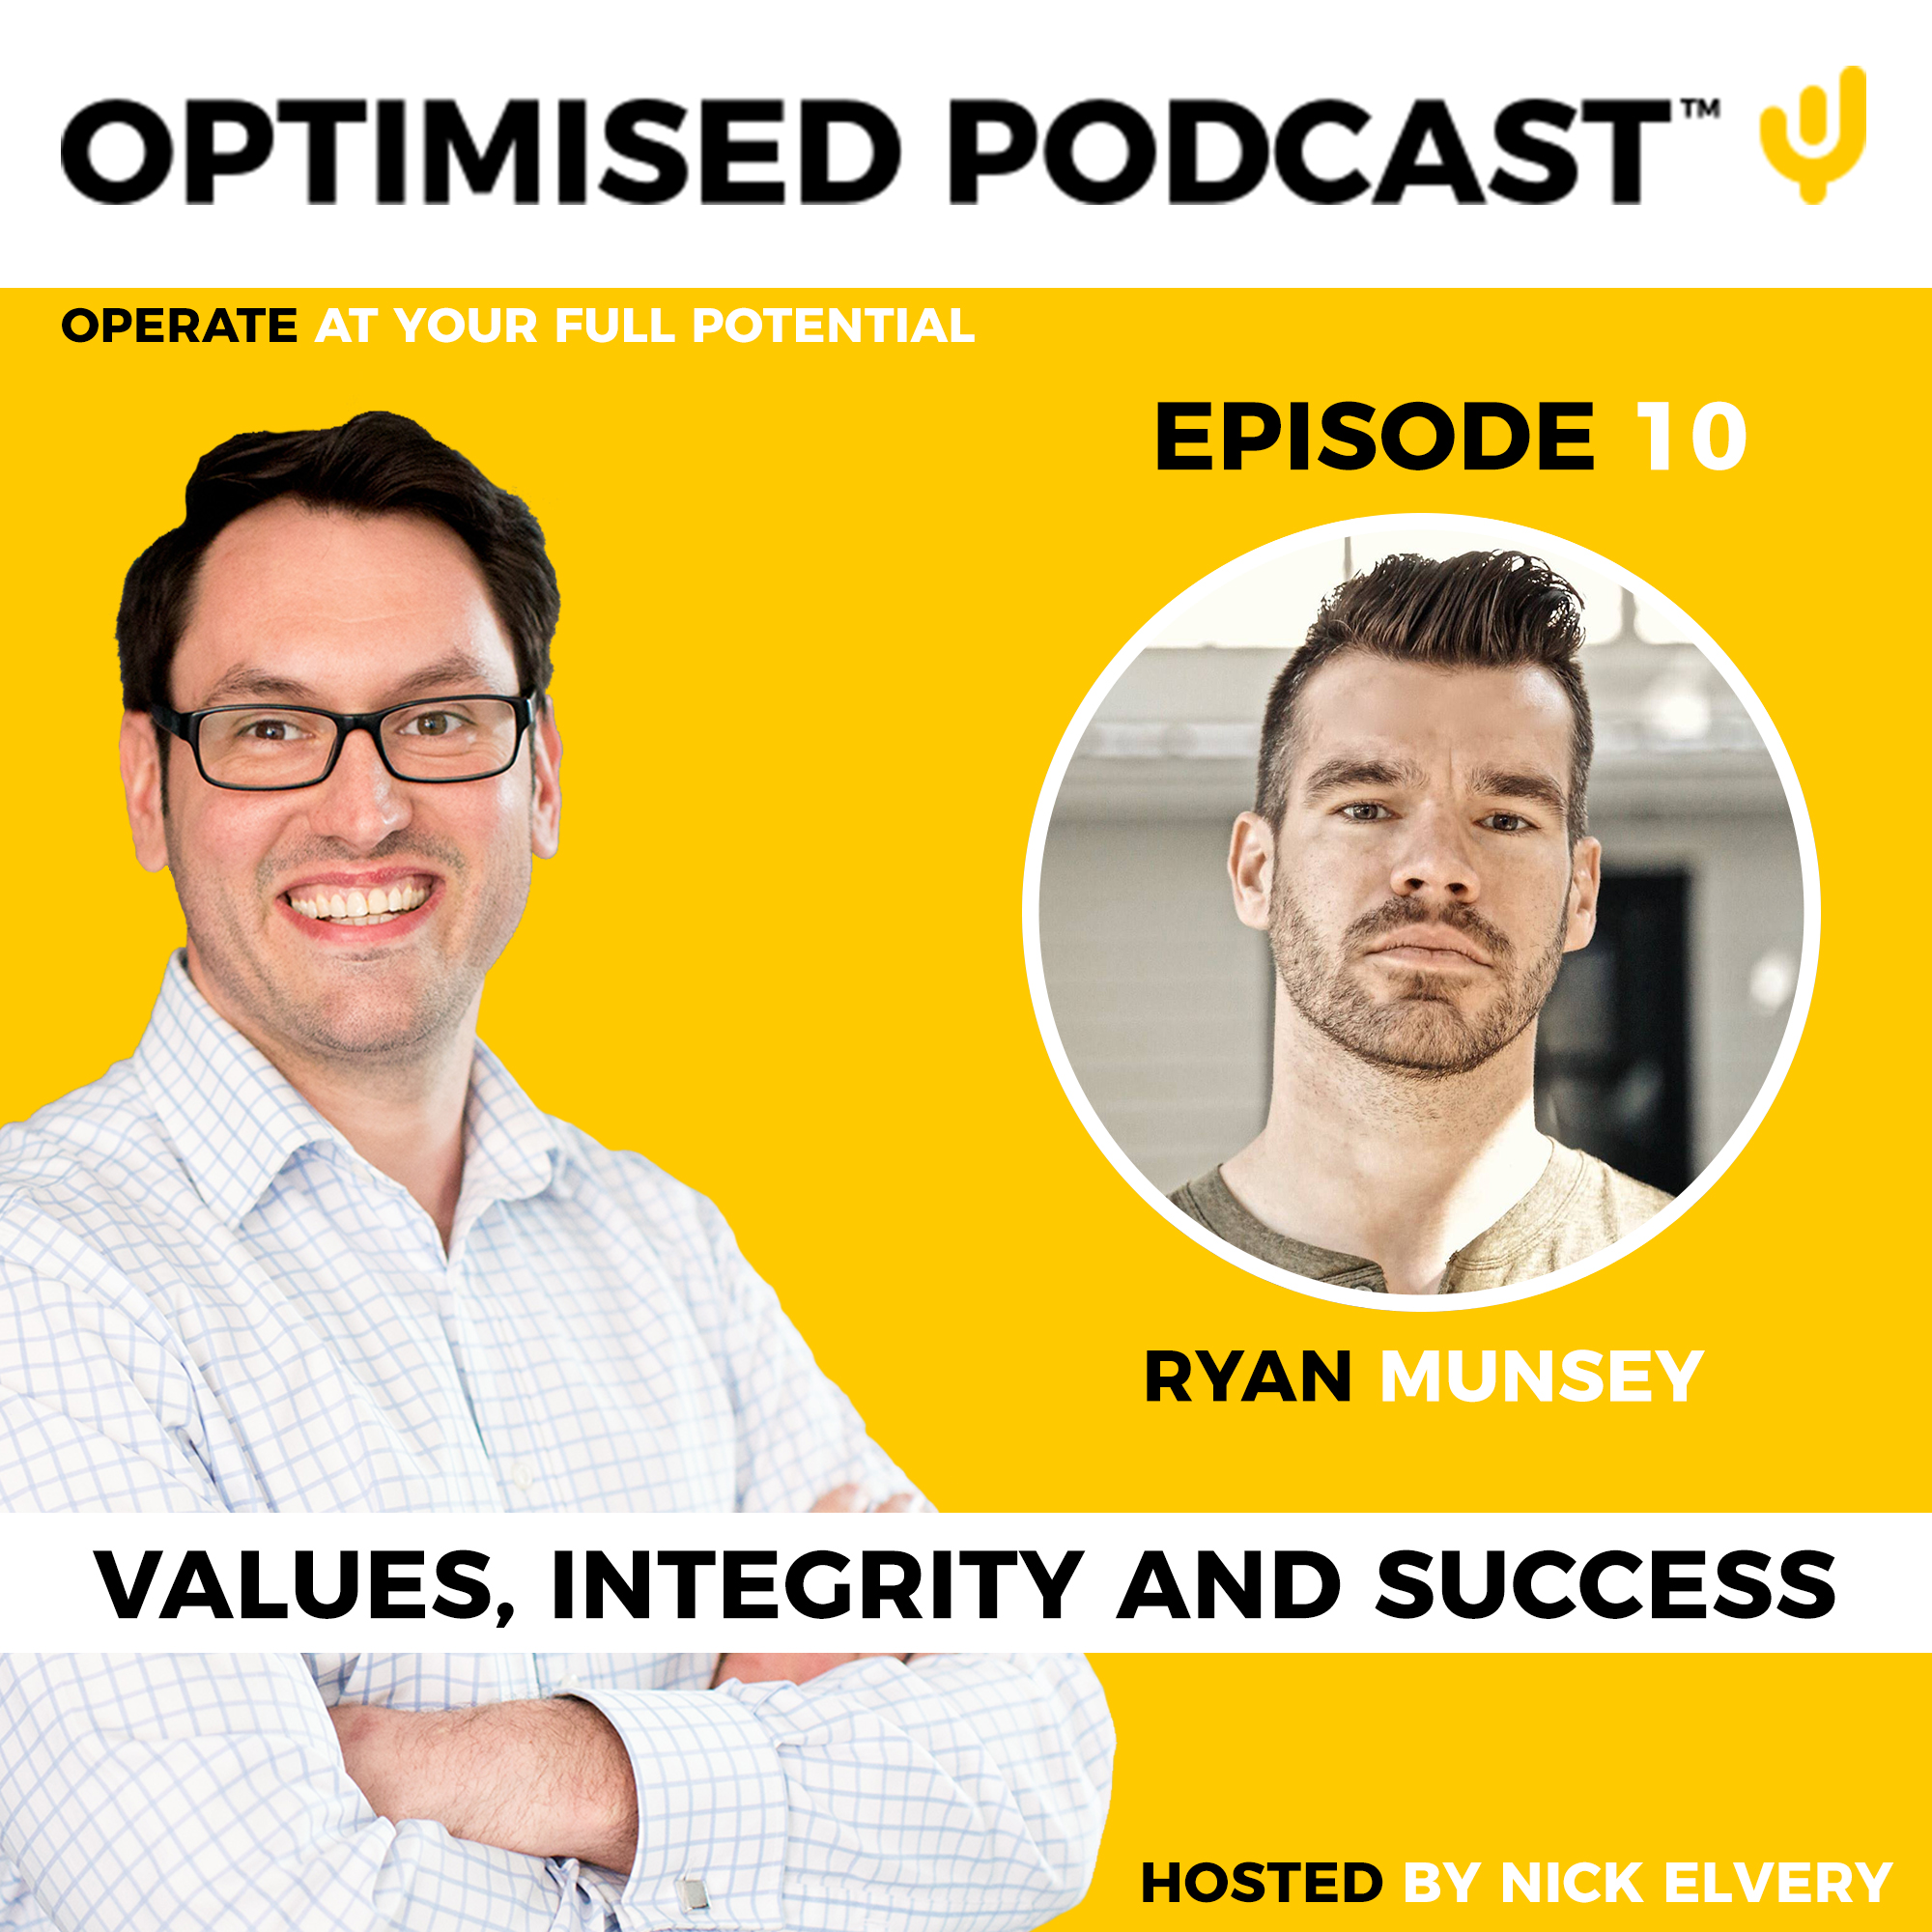 #10 - Values, integrity and success with Ryan Munsey